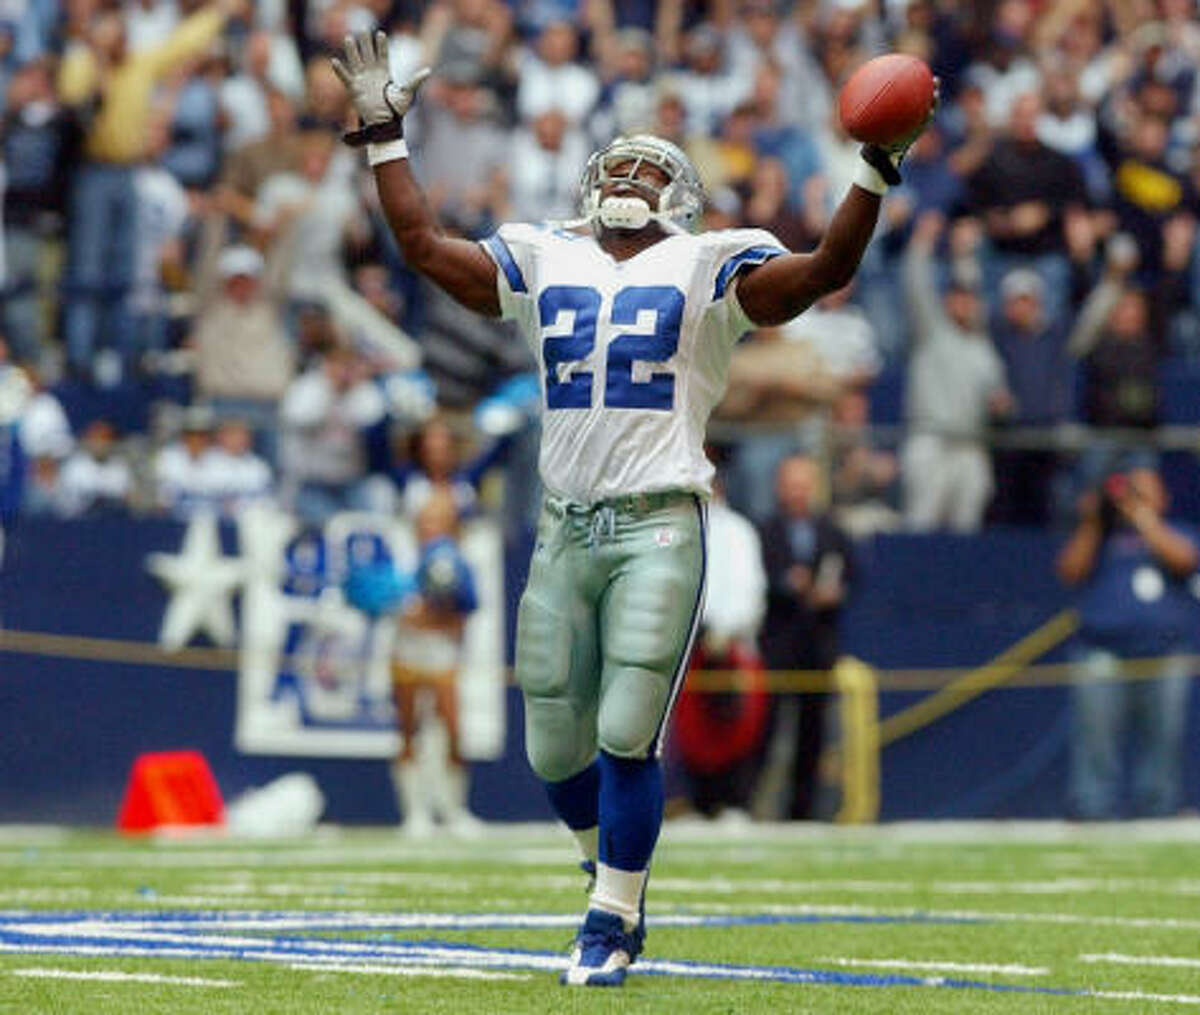 Inductee: Emmitt Smith Position: RB Teams: Cowboys, Cardinals Years: 15 Smith is the NFL's career rushing leader with 18,355 yards and 164 touchdowns. He was the NFL's MVP in 1993 and won three Super Bowls with the Cowboys.